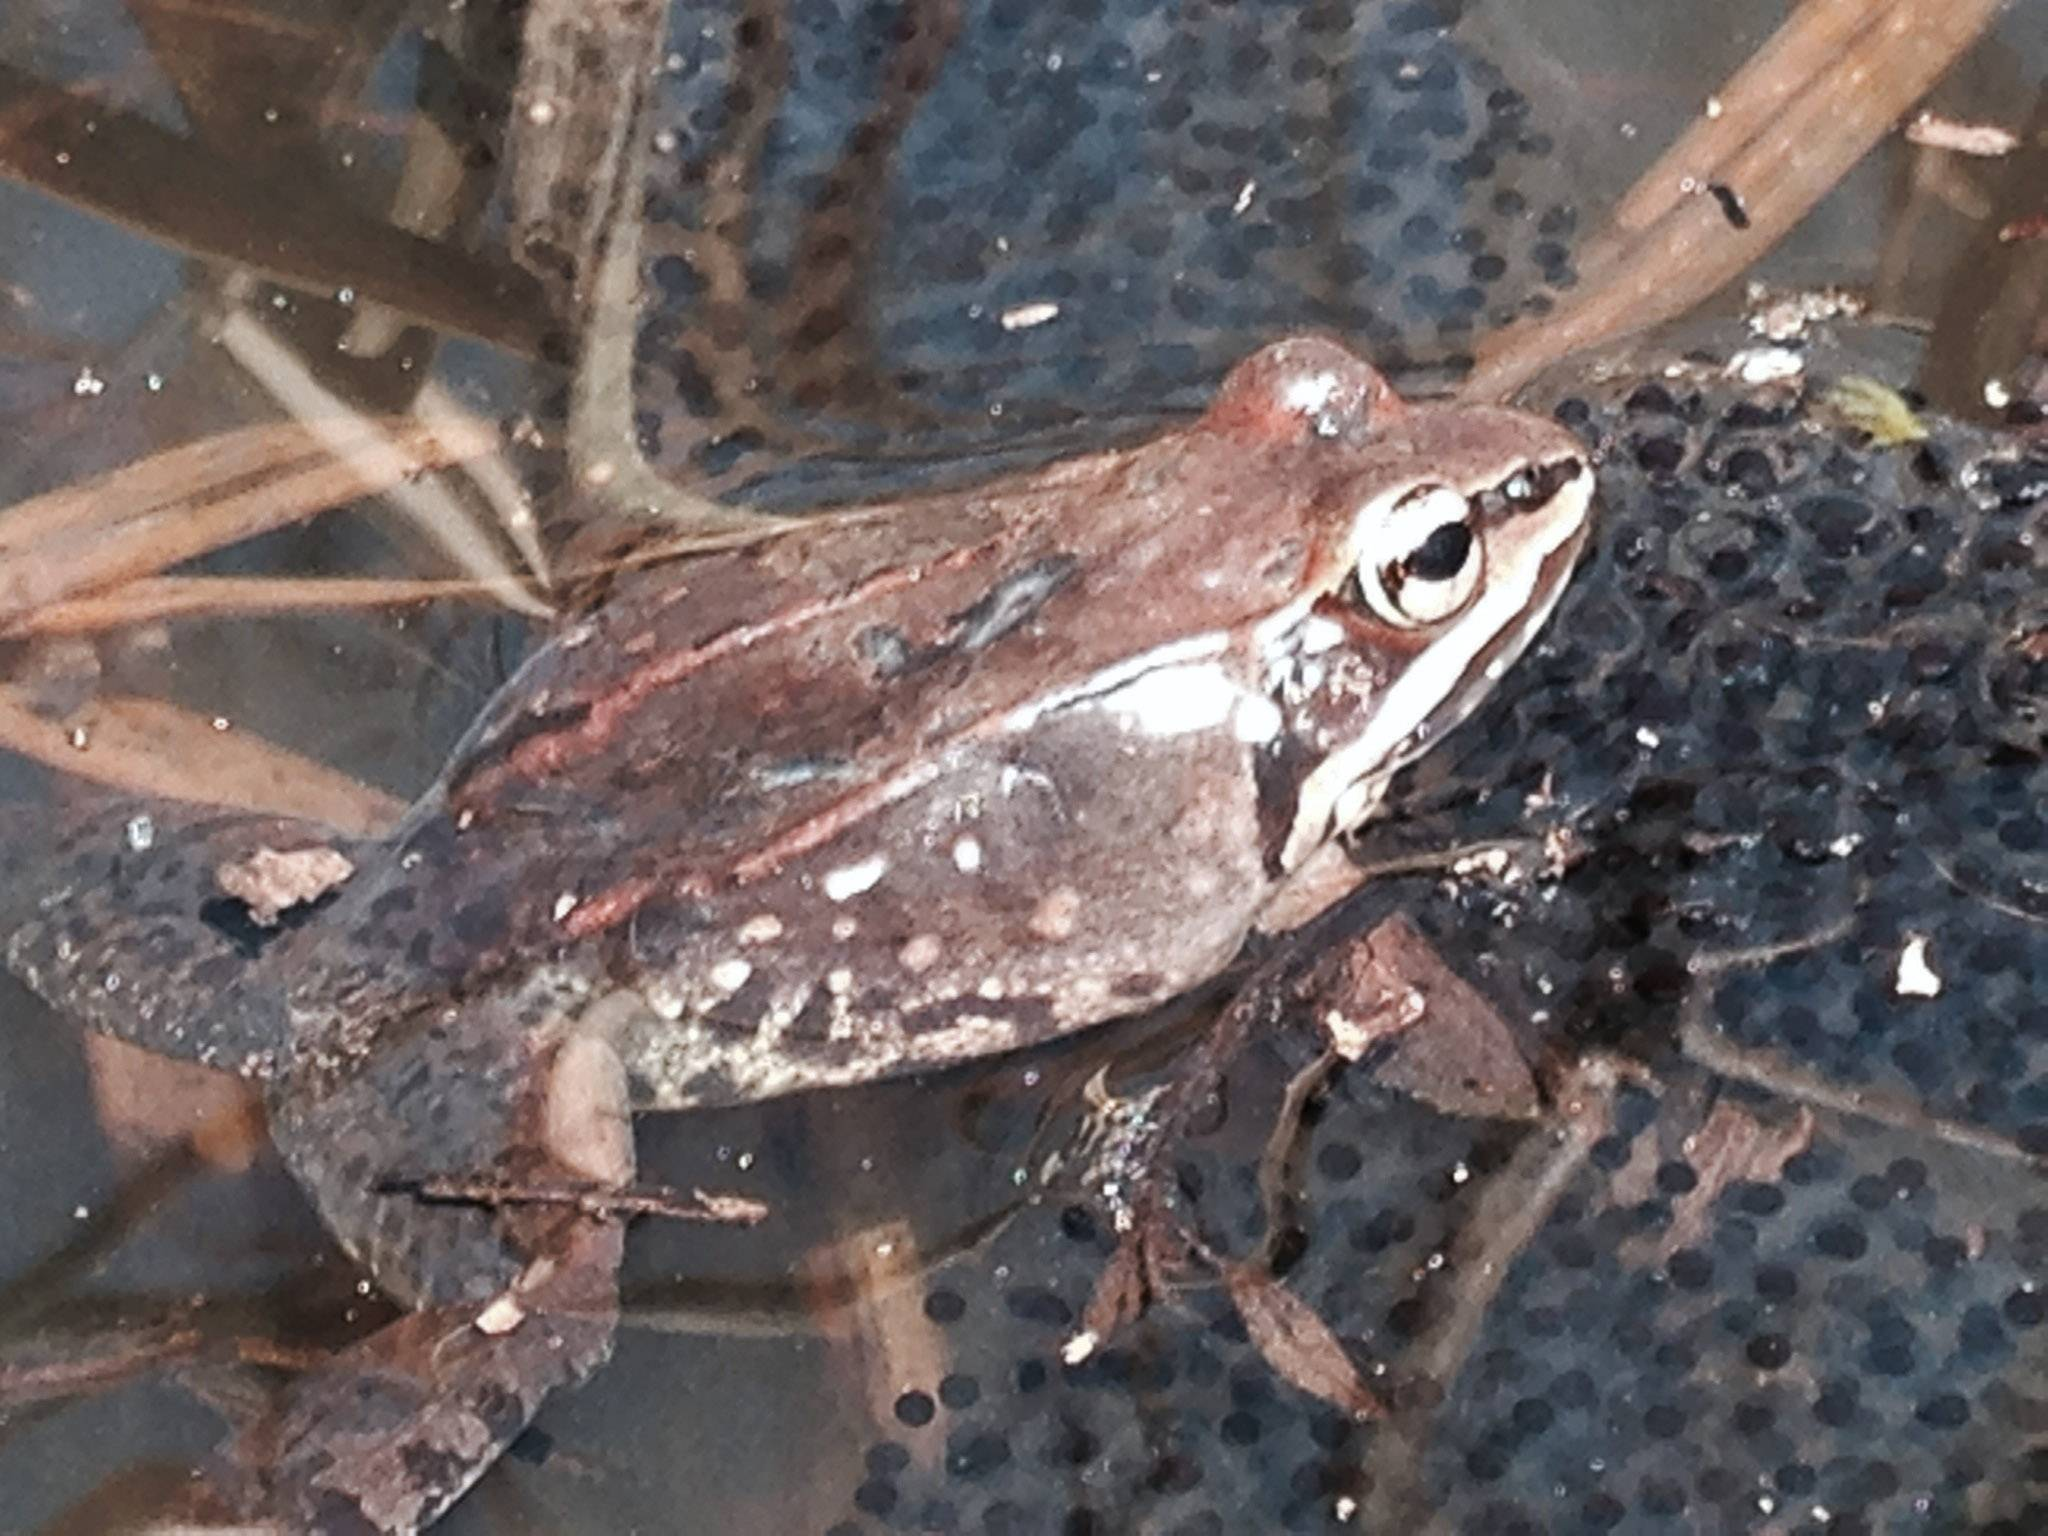 Courtesy of Lake County Forest Preserve DistrictA wood frog with eggs.